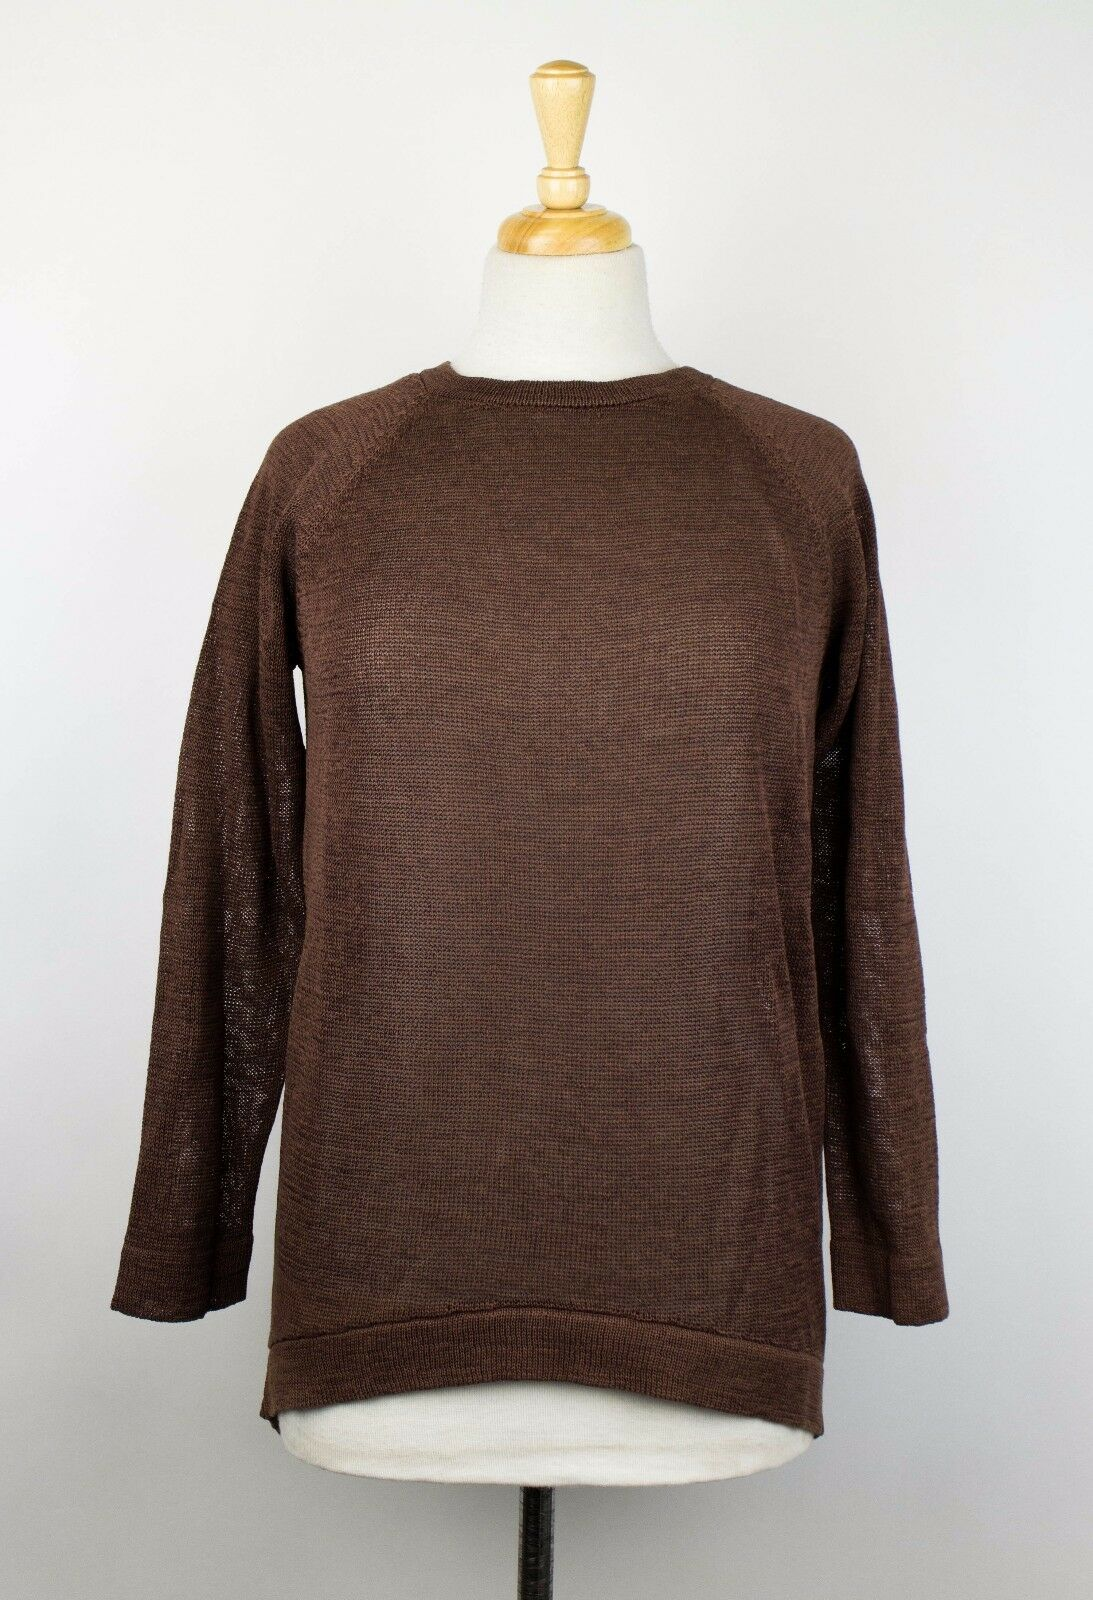 NWT BRUNELLO CUCINELLI Brown Cotton Long Sleeve Knit Hi Lo Sweater Size S